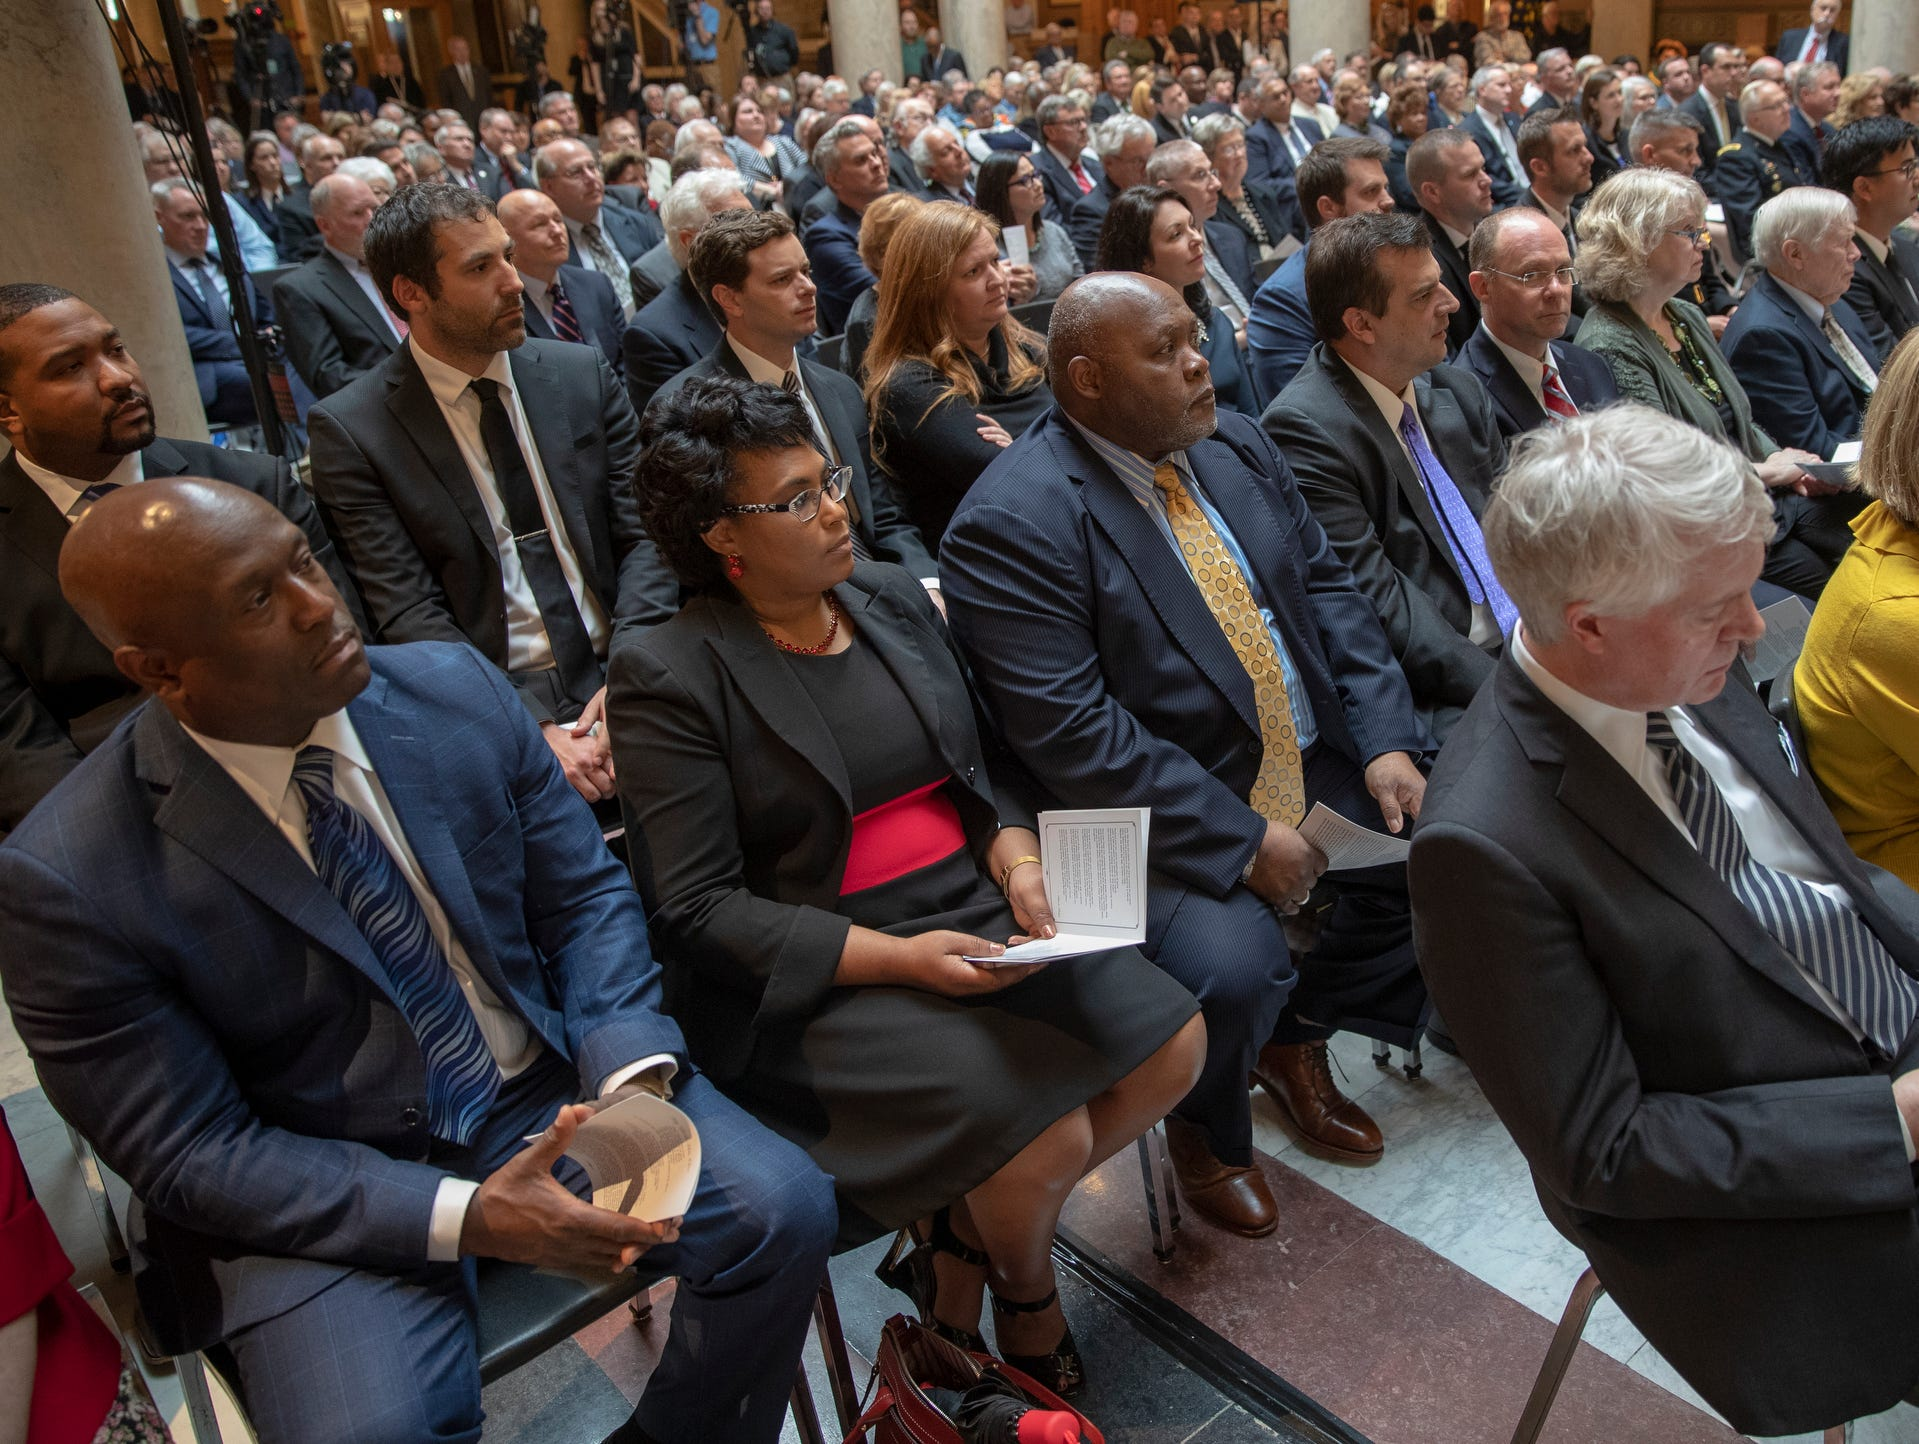 A service for Indiana's Birch Bayh, who died on March 14, and was a three-term U.S. Senator, Indiana Statehouse, Indianapolis, Wednesday, May 1, 2019.